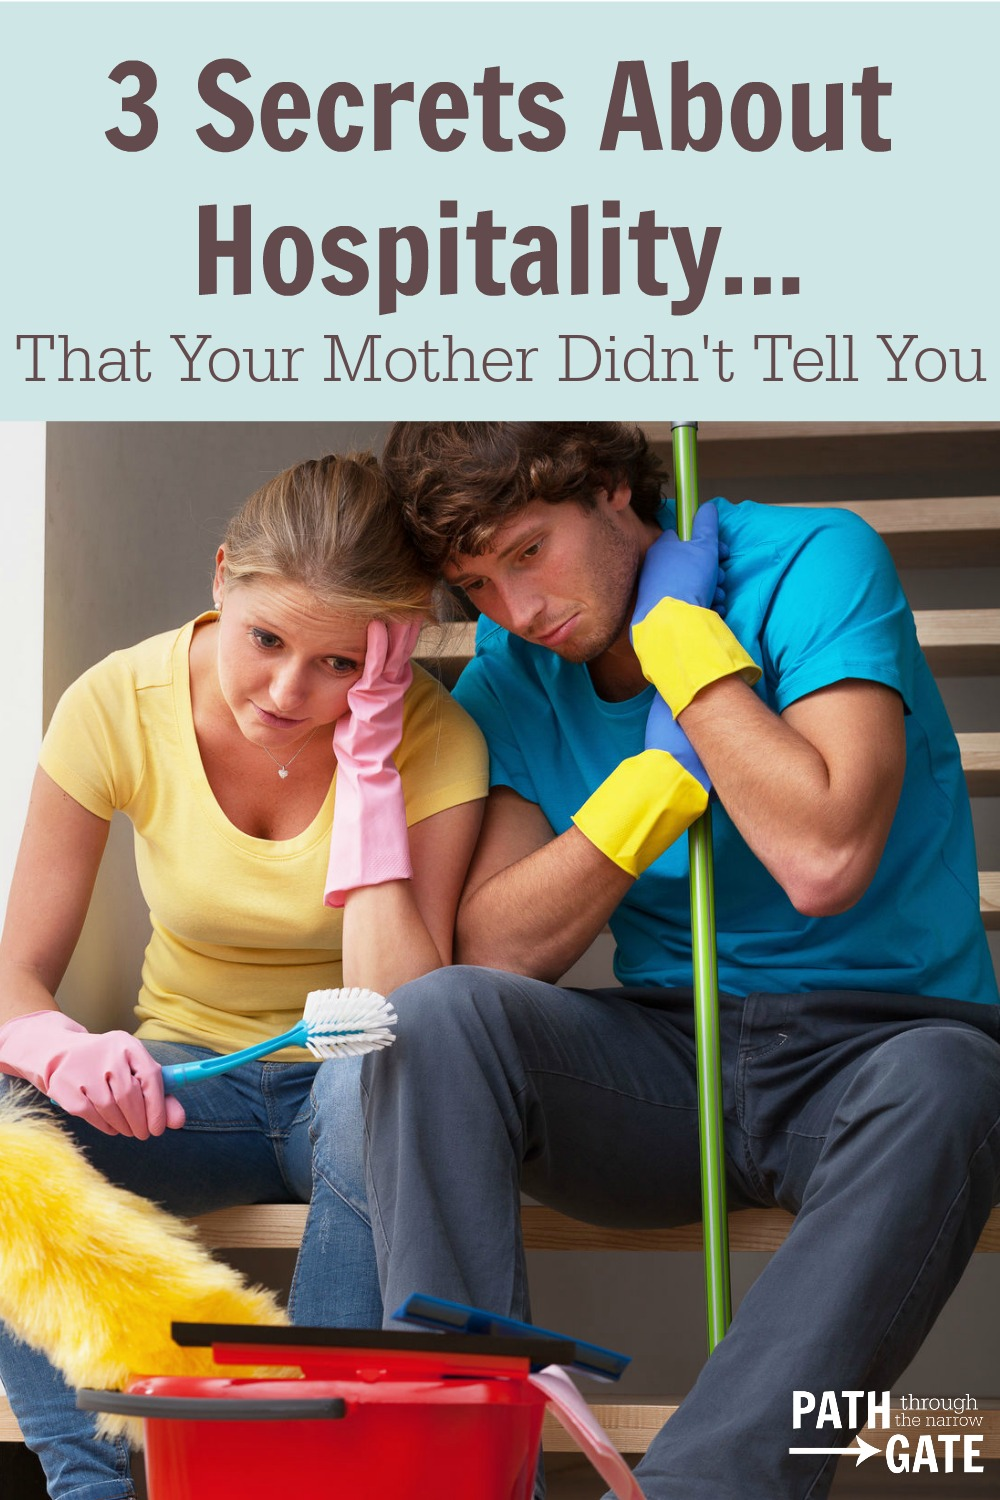 Do you feel overwhelmed by the thought of hospitality? Here are three secrets that make hospitality much easier, that your mother may not have told you!|Path Through the Narrow Gate